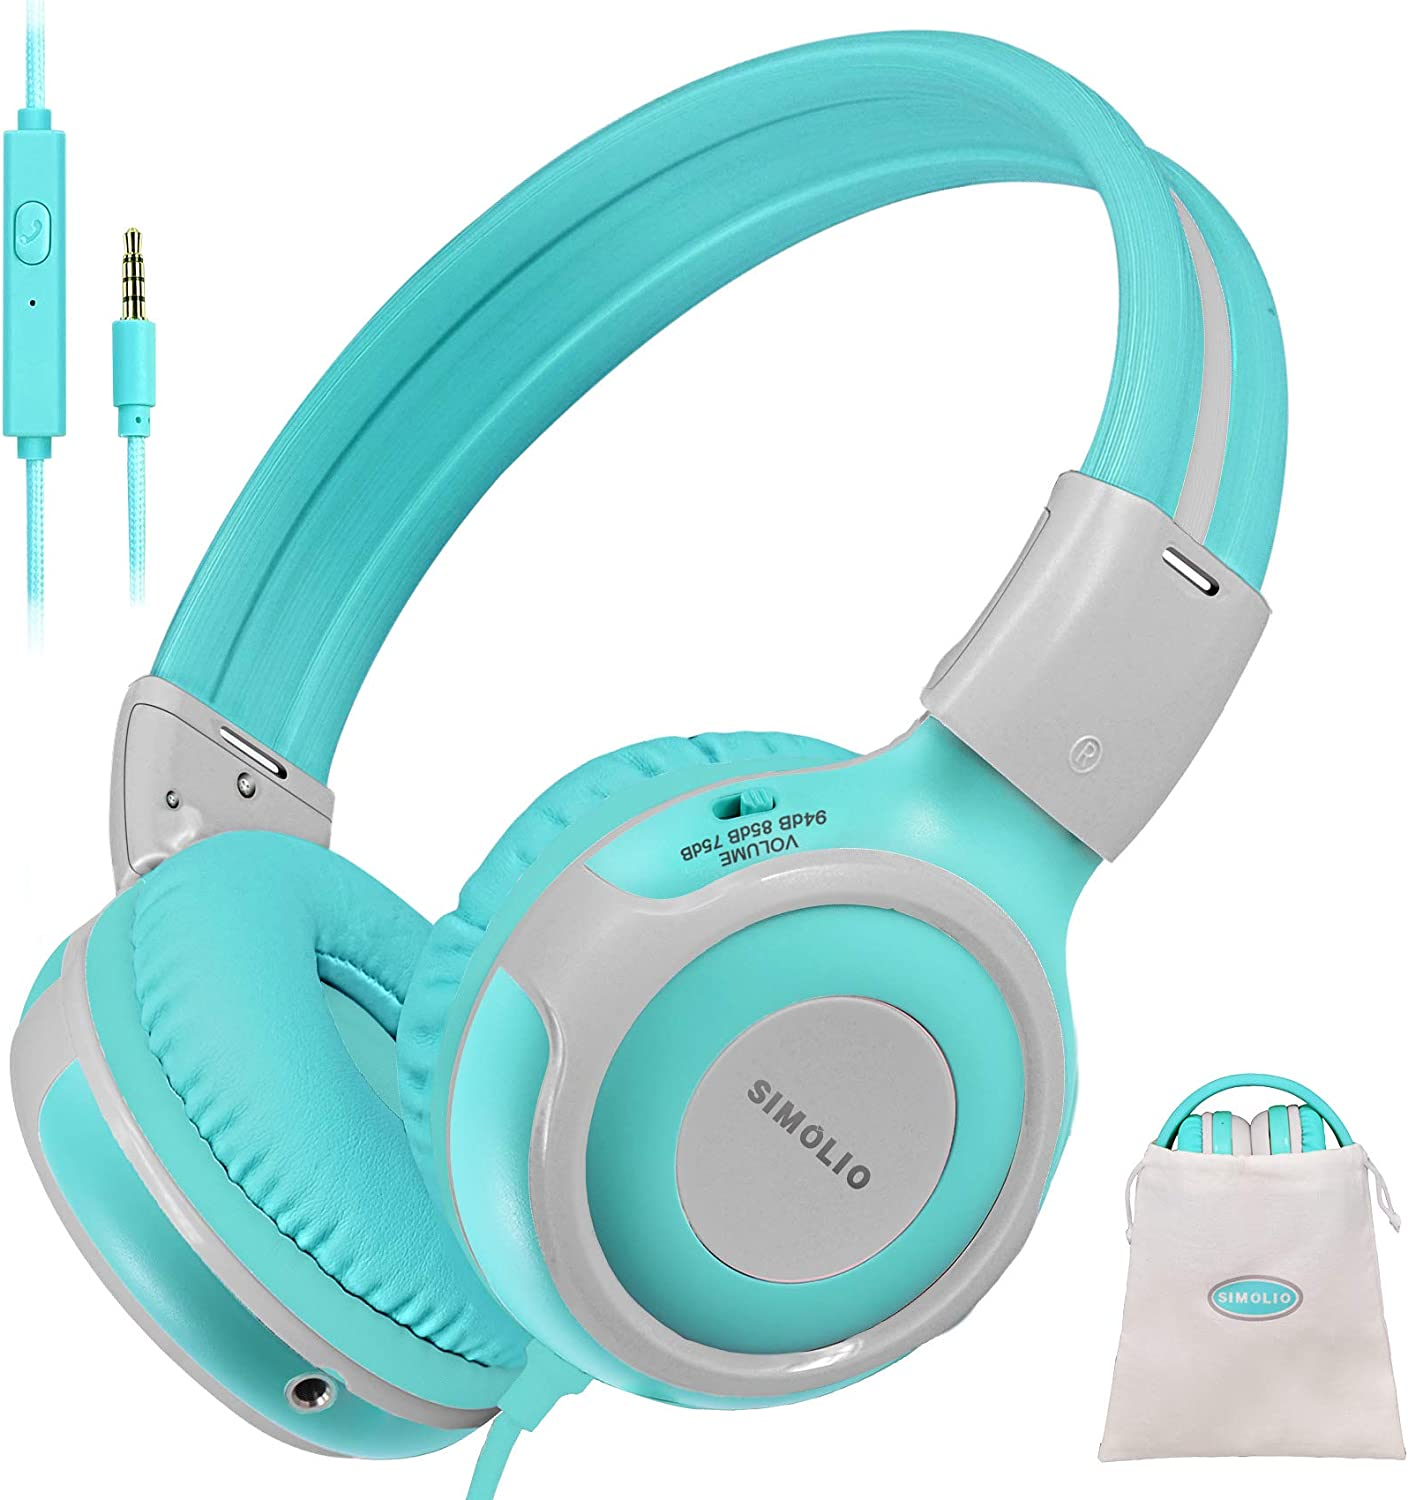 SIMOLIO Durable Kids Headphone with Microphone & Volume Control, Safe 75dB,85dB,94dB Volume Limit, Audio Share Function Child Headphone with 3.5mm Plug for Girls/Boys/Tablet/iPad/Laptop, (SM-903G)